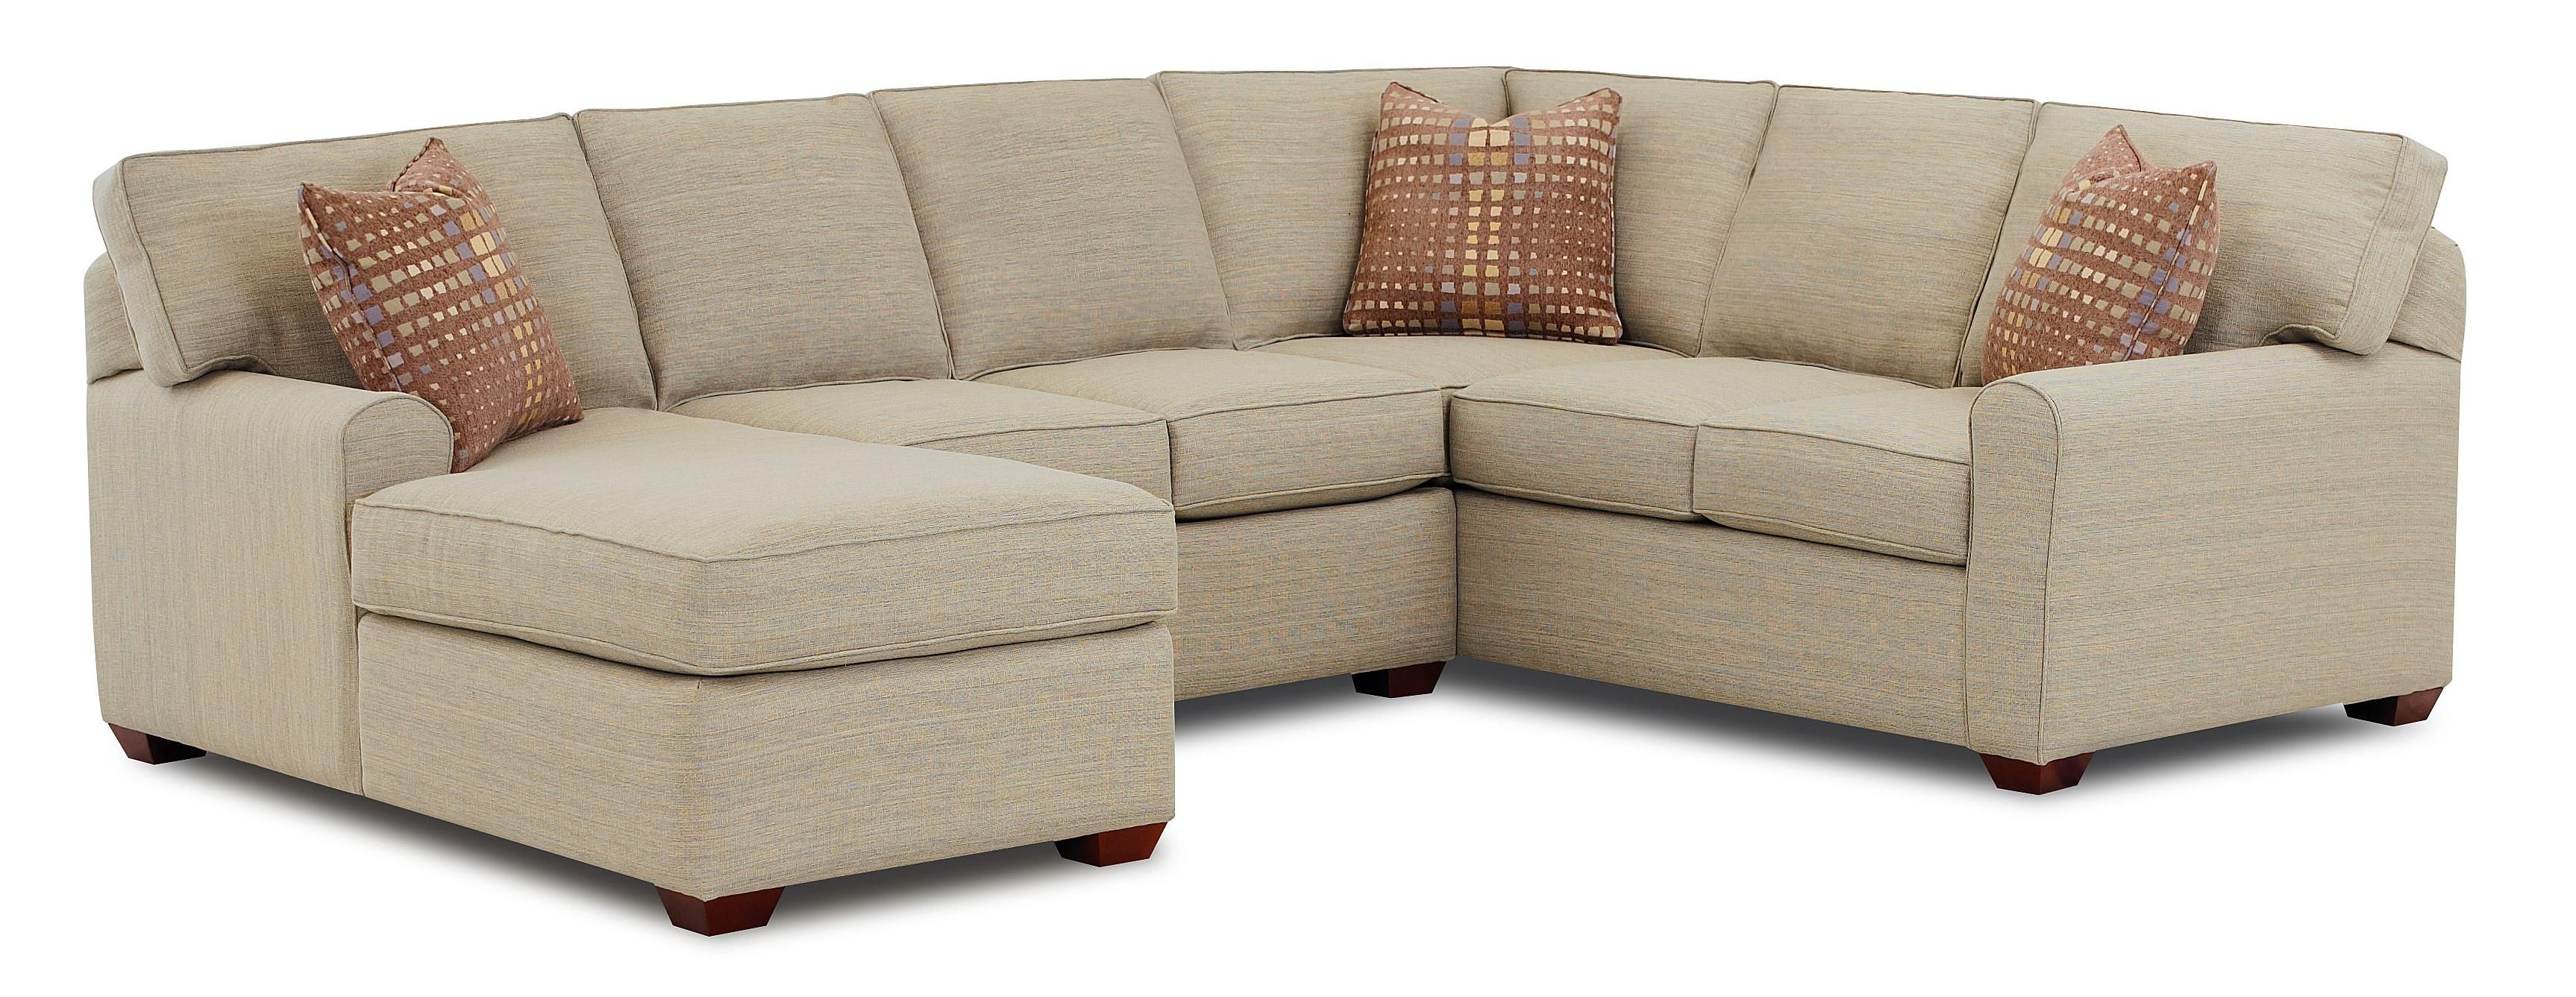 Things To Consider While Ing Chaise Lounge Chairs Elites Home Decor Living Room Sectional